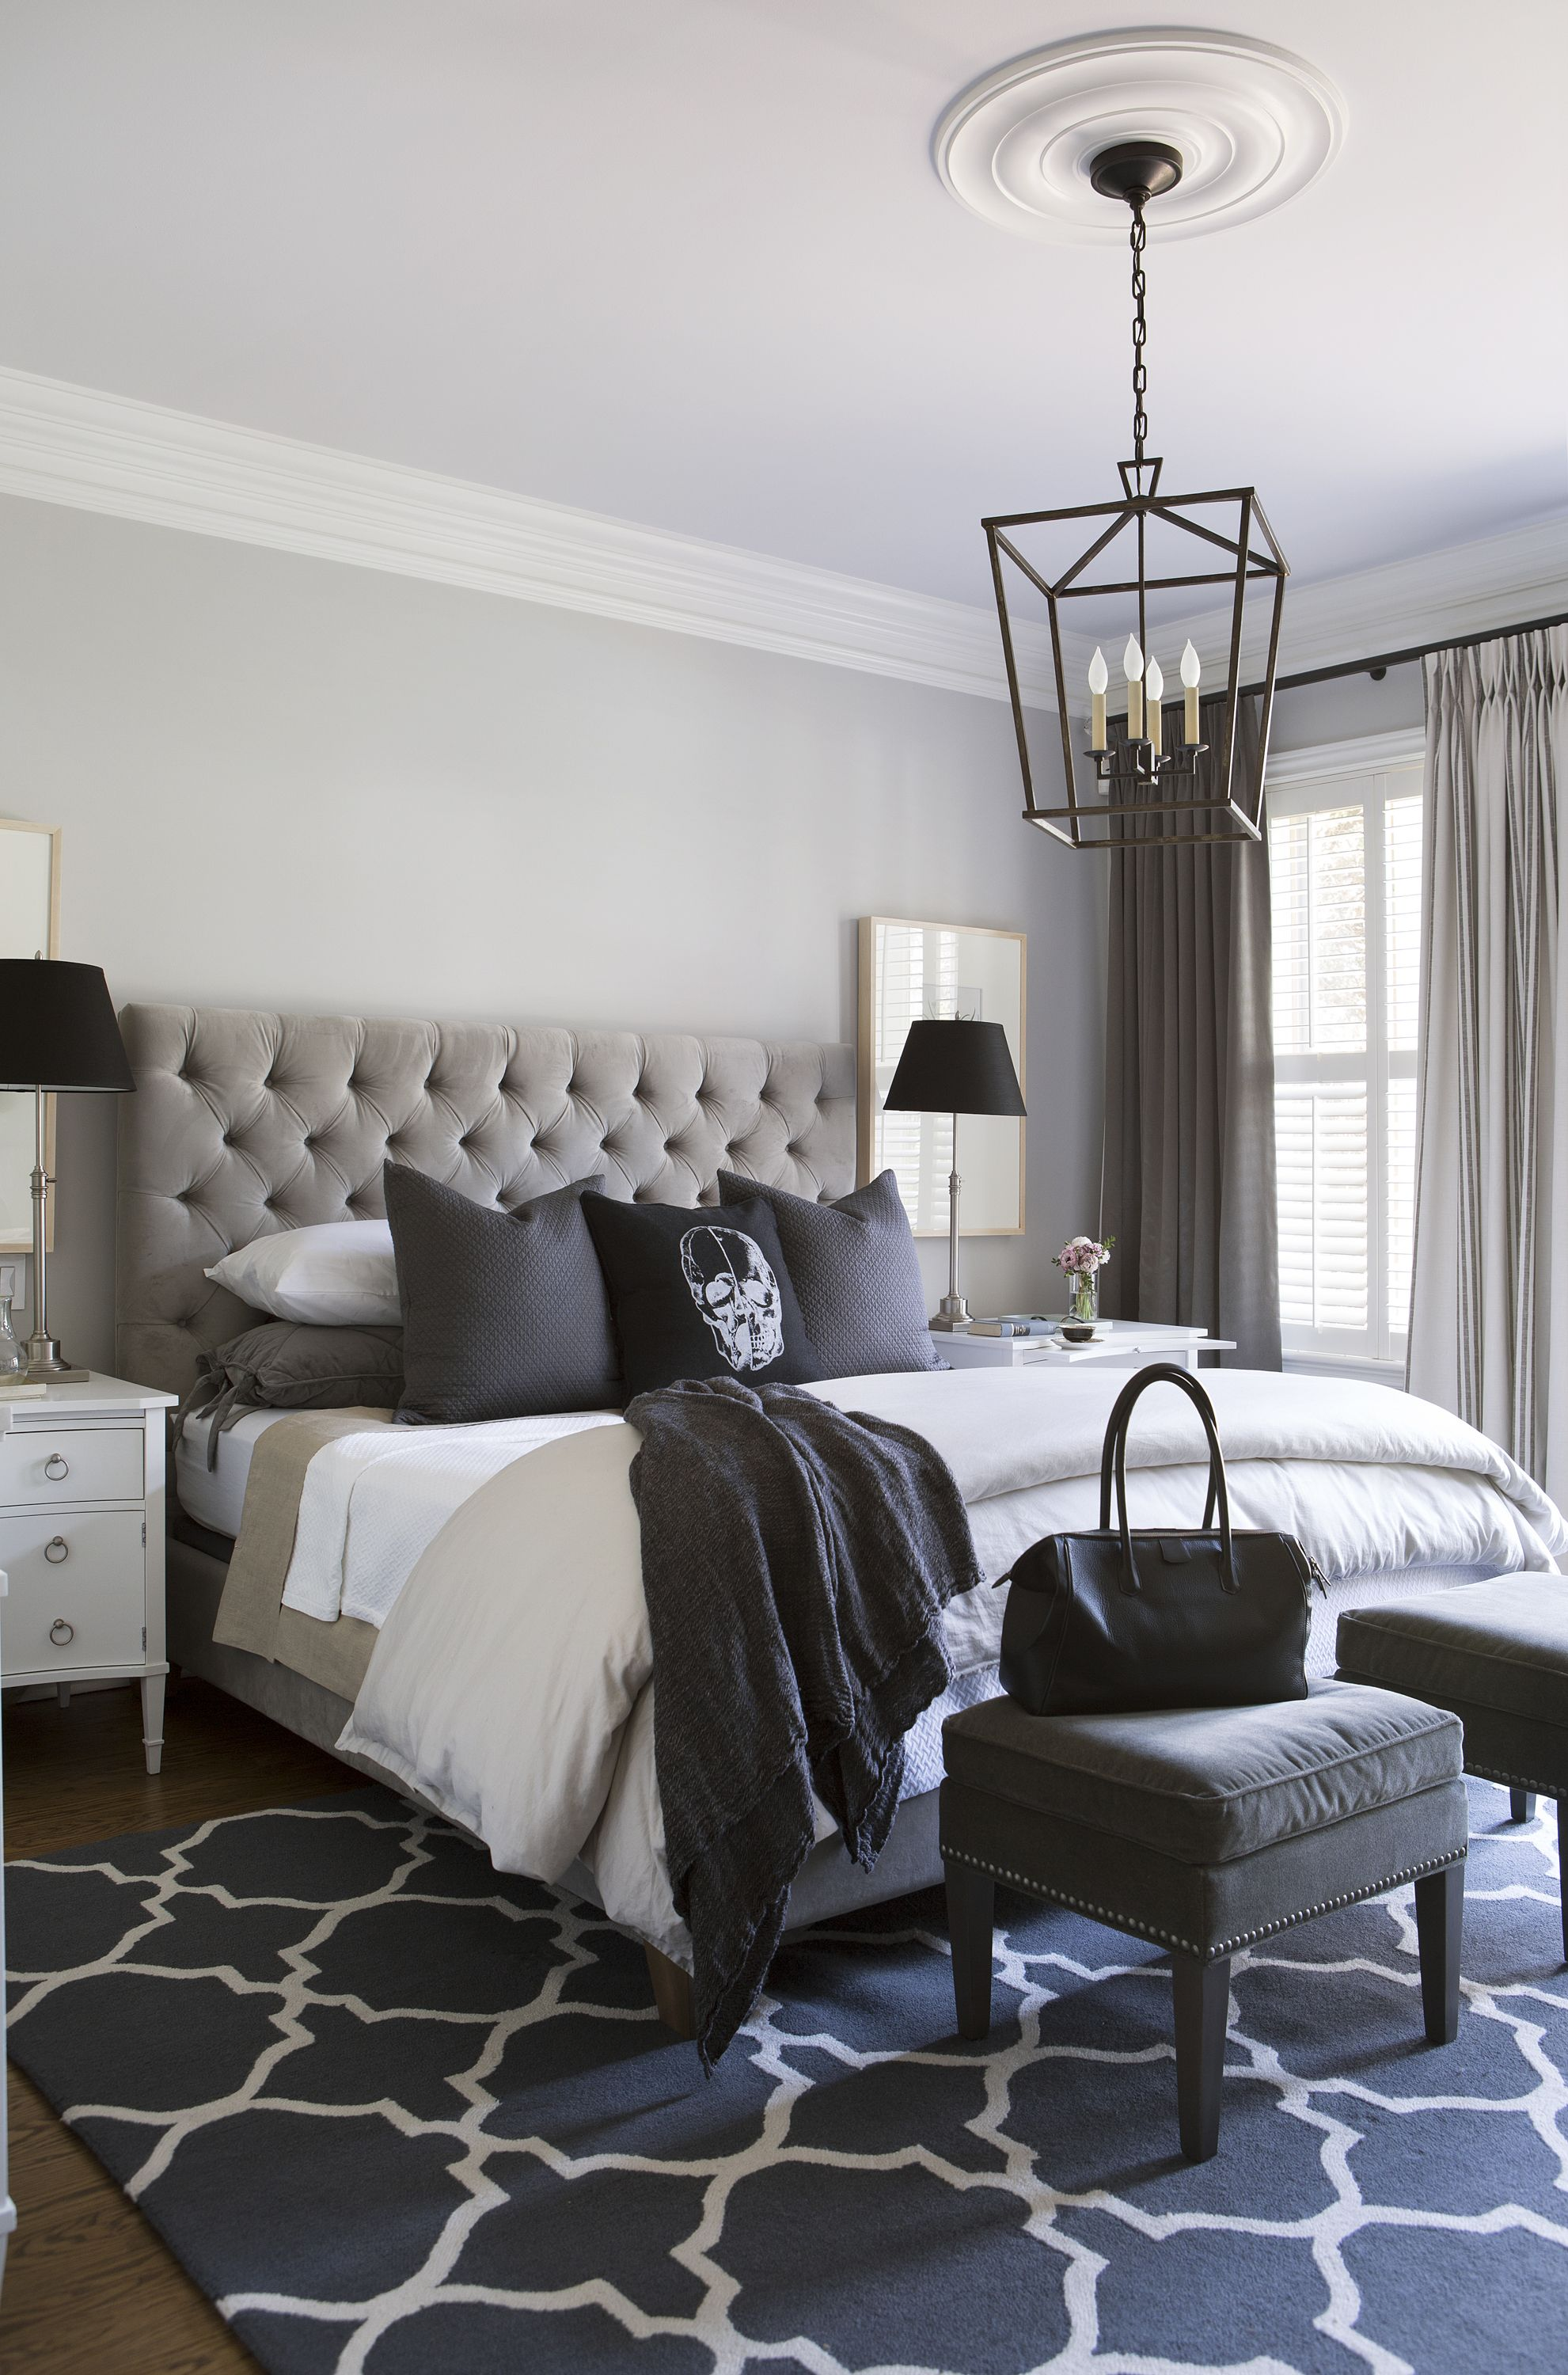 Gray Bedroom Suite Grey And White Bedroom Decorating Ideas Grey And White Master Bedroom Grey Laund Small Master Bedroom Master Bedrooms Decor Bedroom Interior